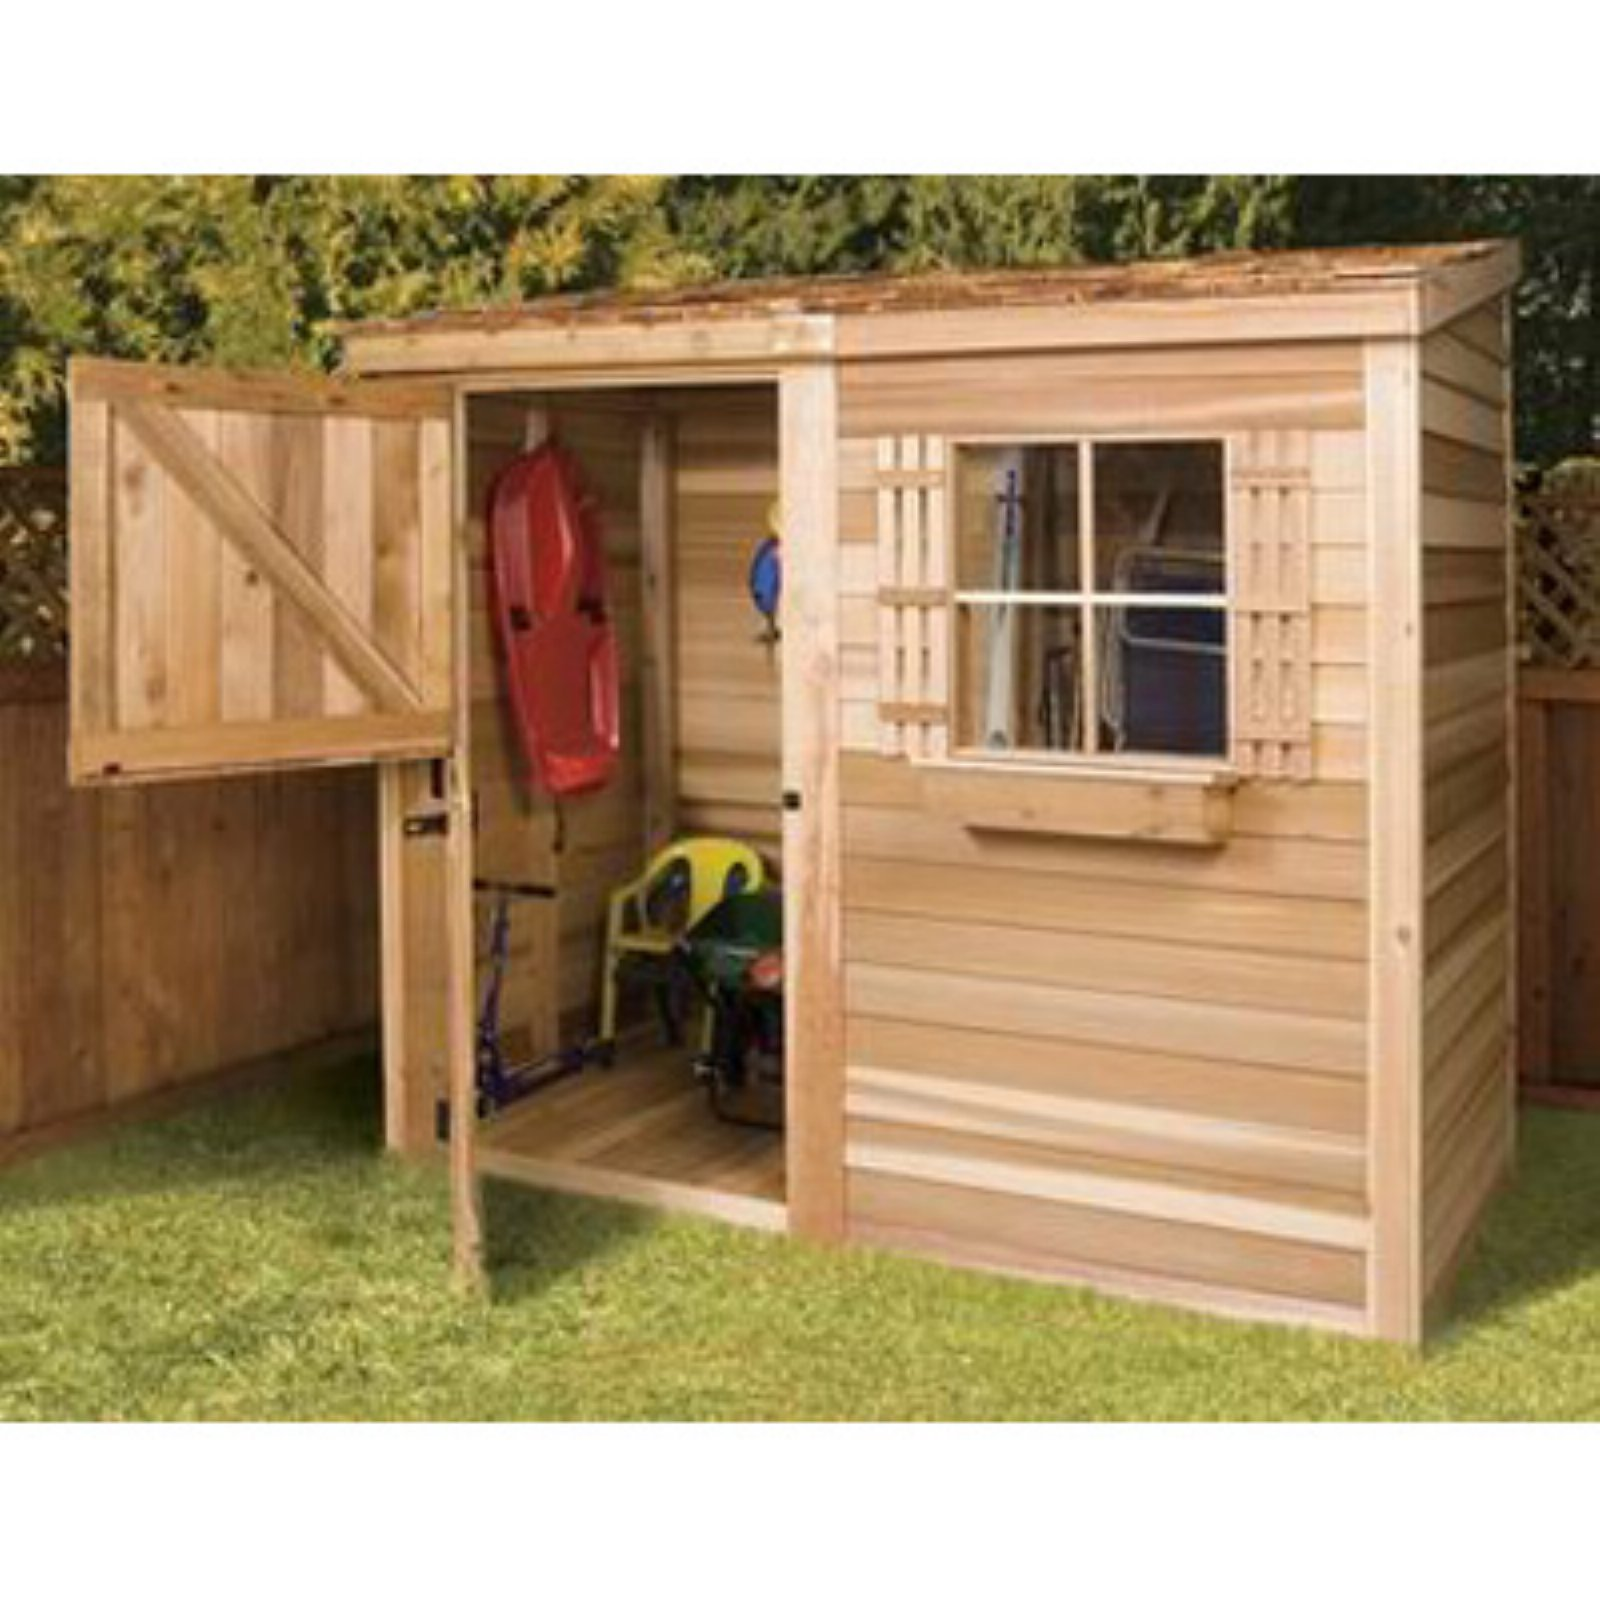 Cedar Shed 8 x 4 ft. Bayside Wood Storage Shed